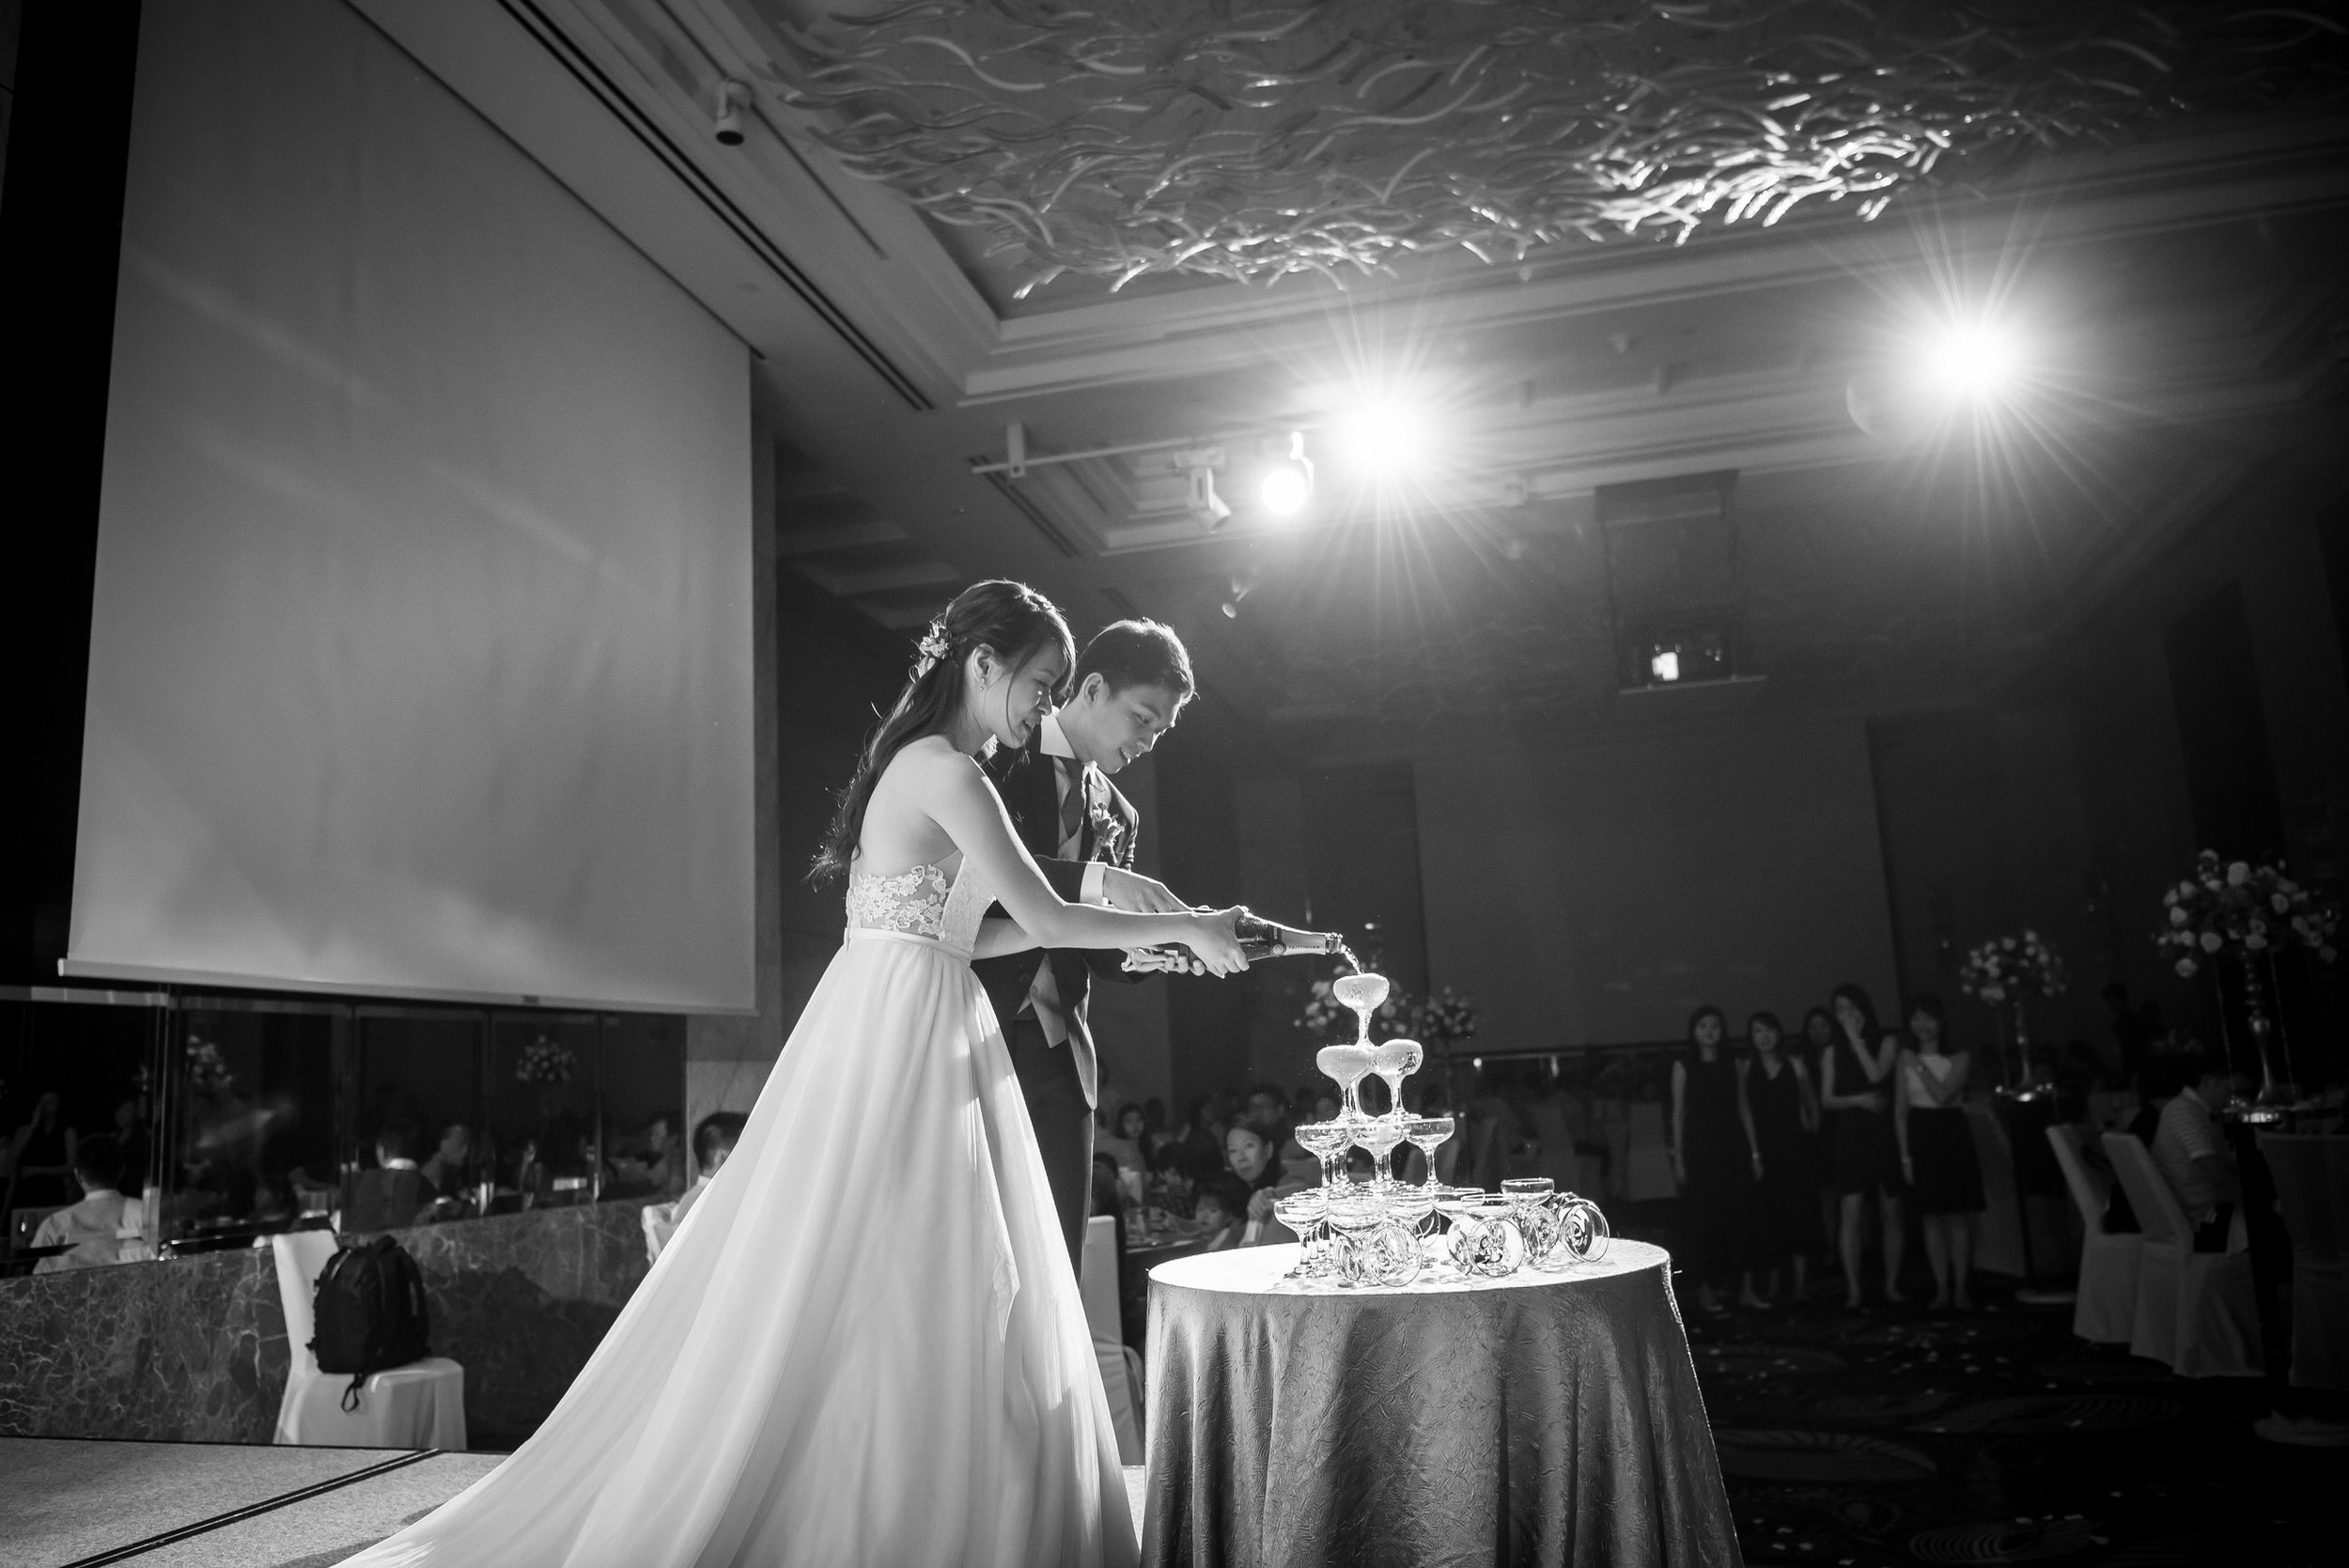 YinYong&JiaYing-635.jpg